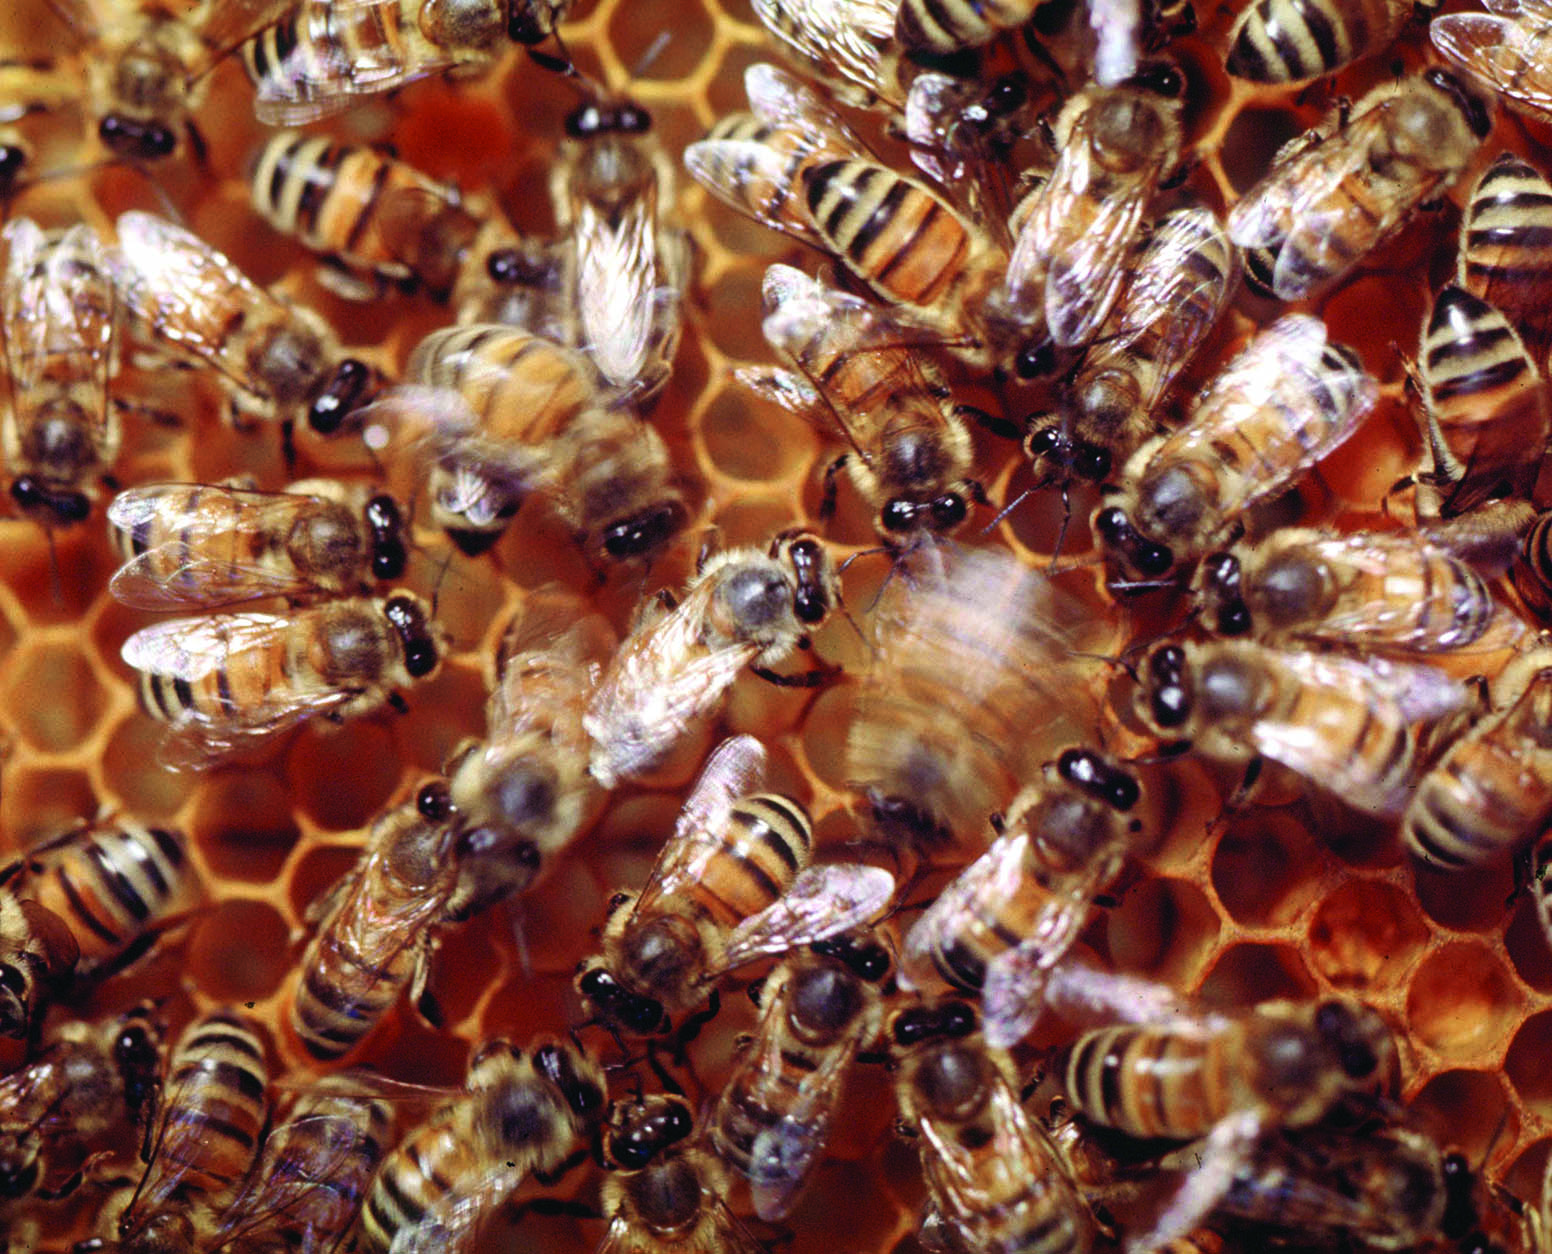 The complex life of the honey bee purdue pesticide programs an information processing center xflitez Images